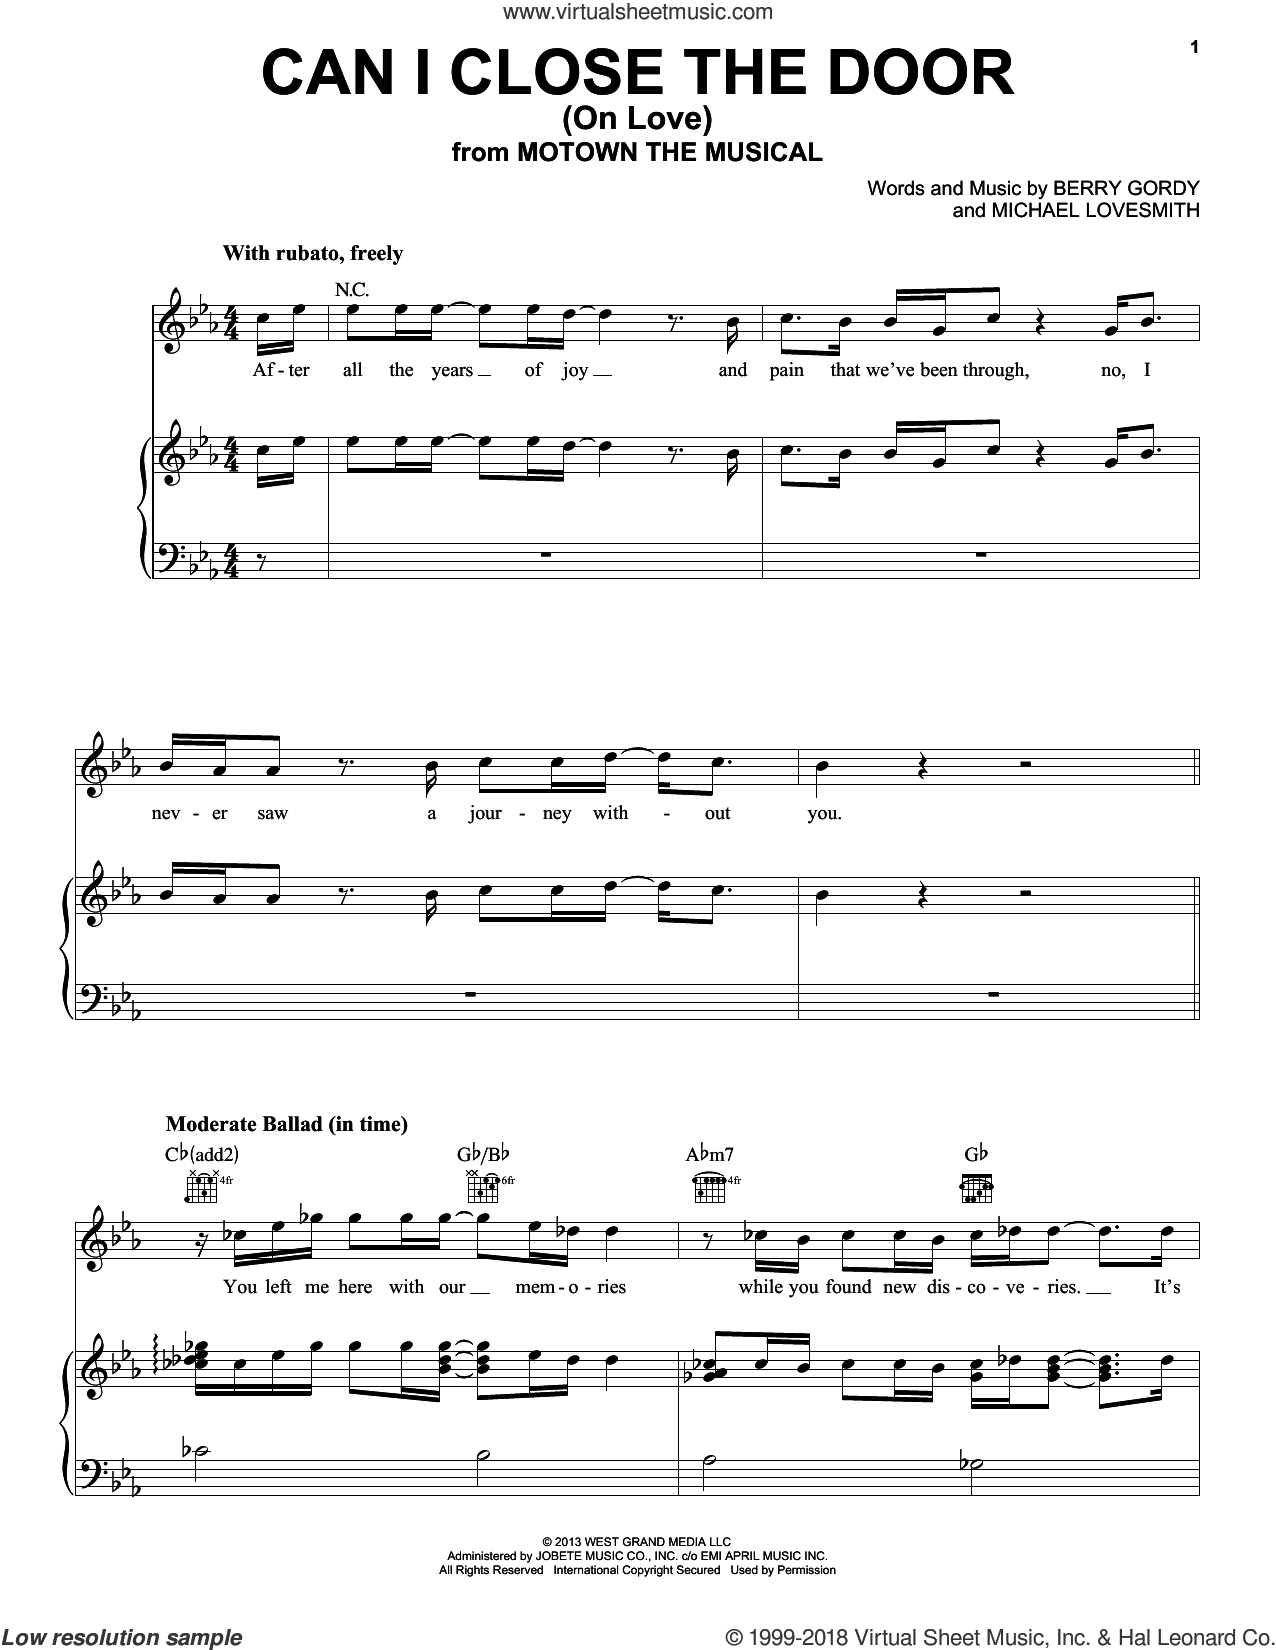 Can I Close The Door (On Love) sheet music for voice, piano or guitar by Michael Lovesmith